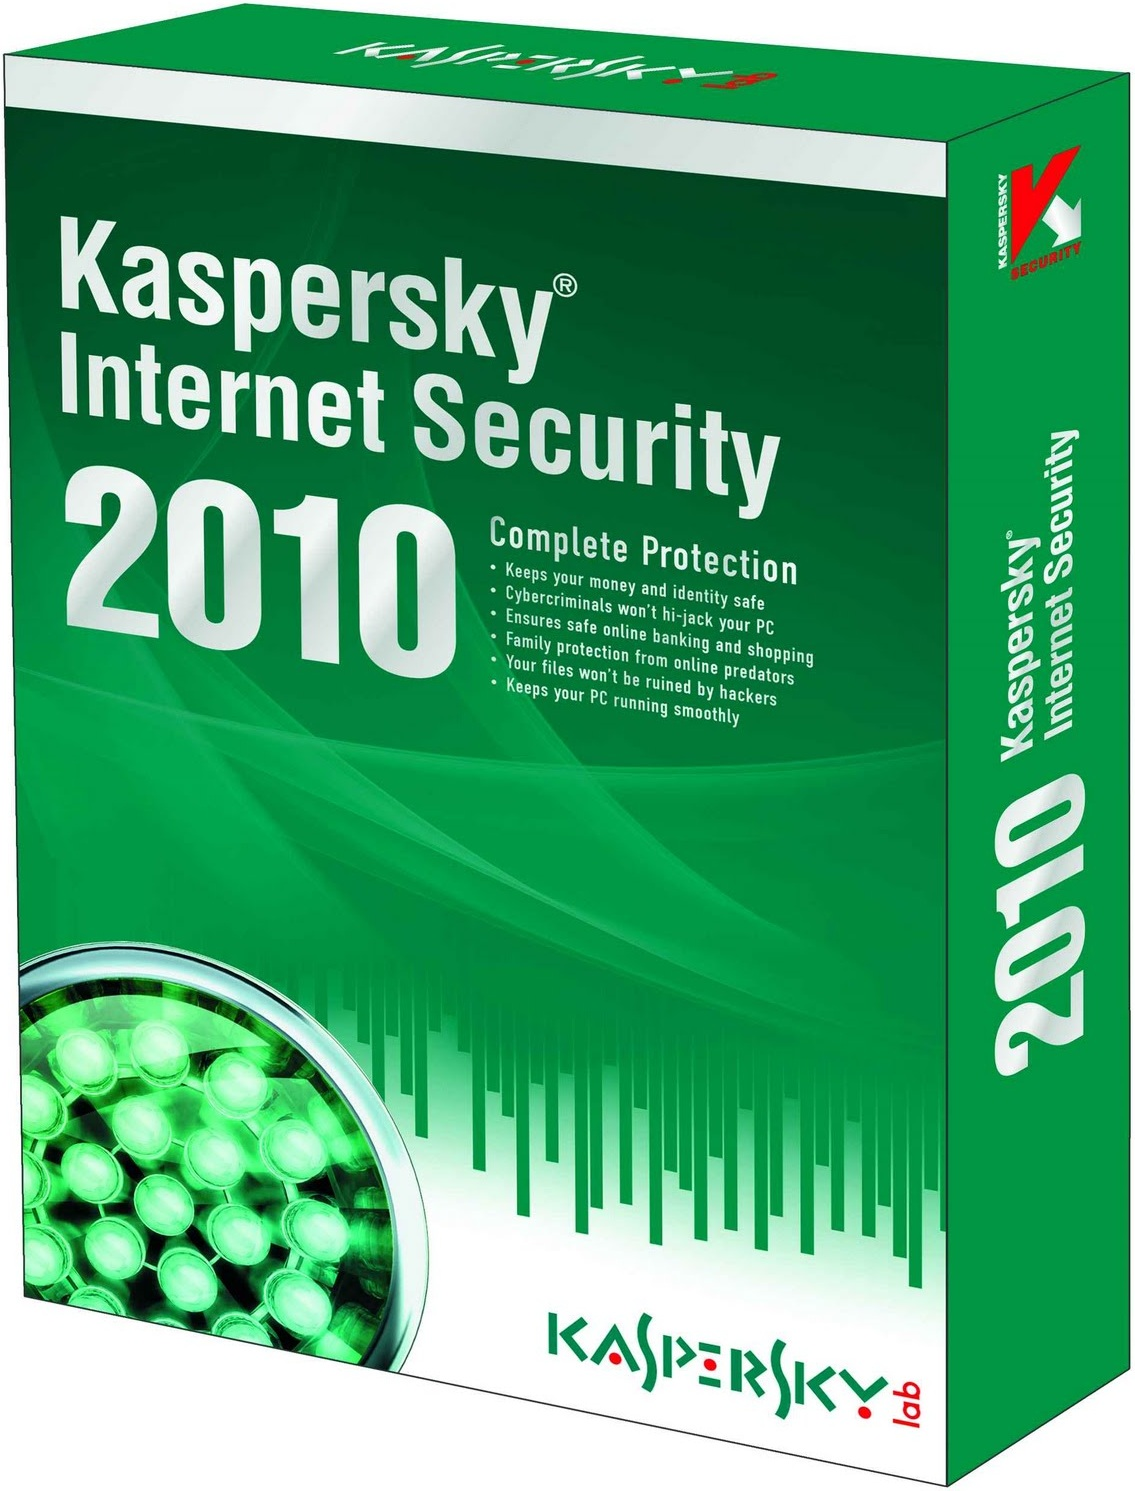 Kaspersky Lab US